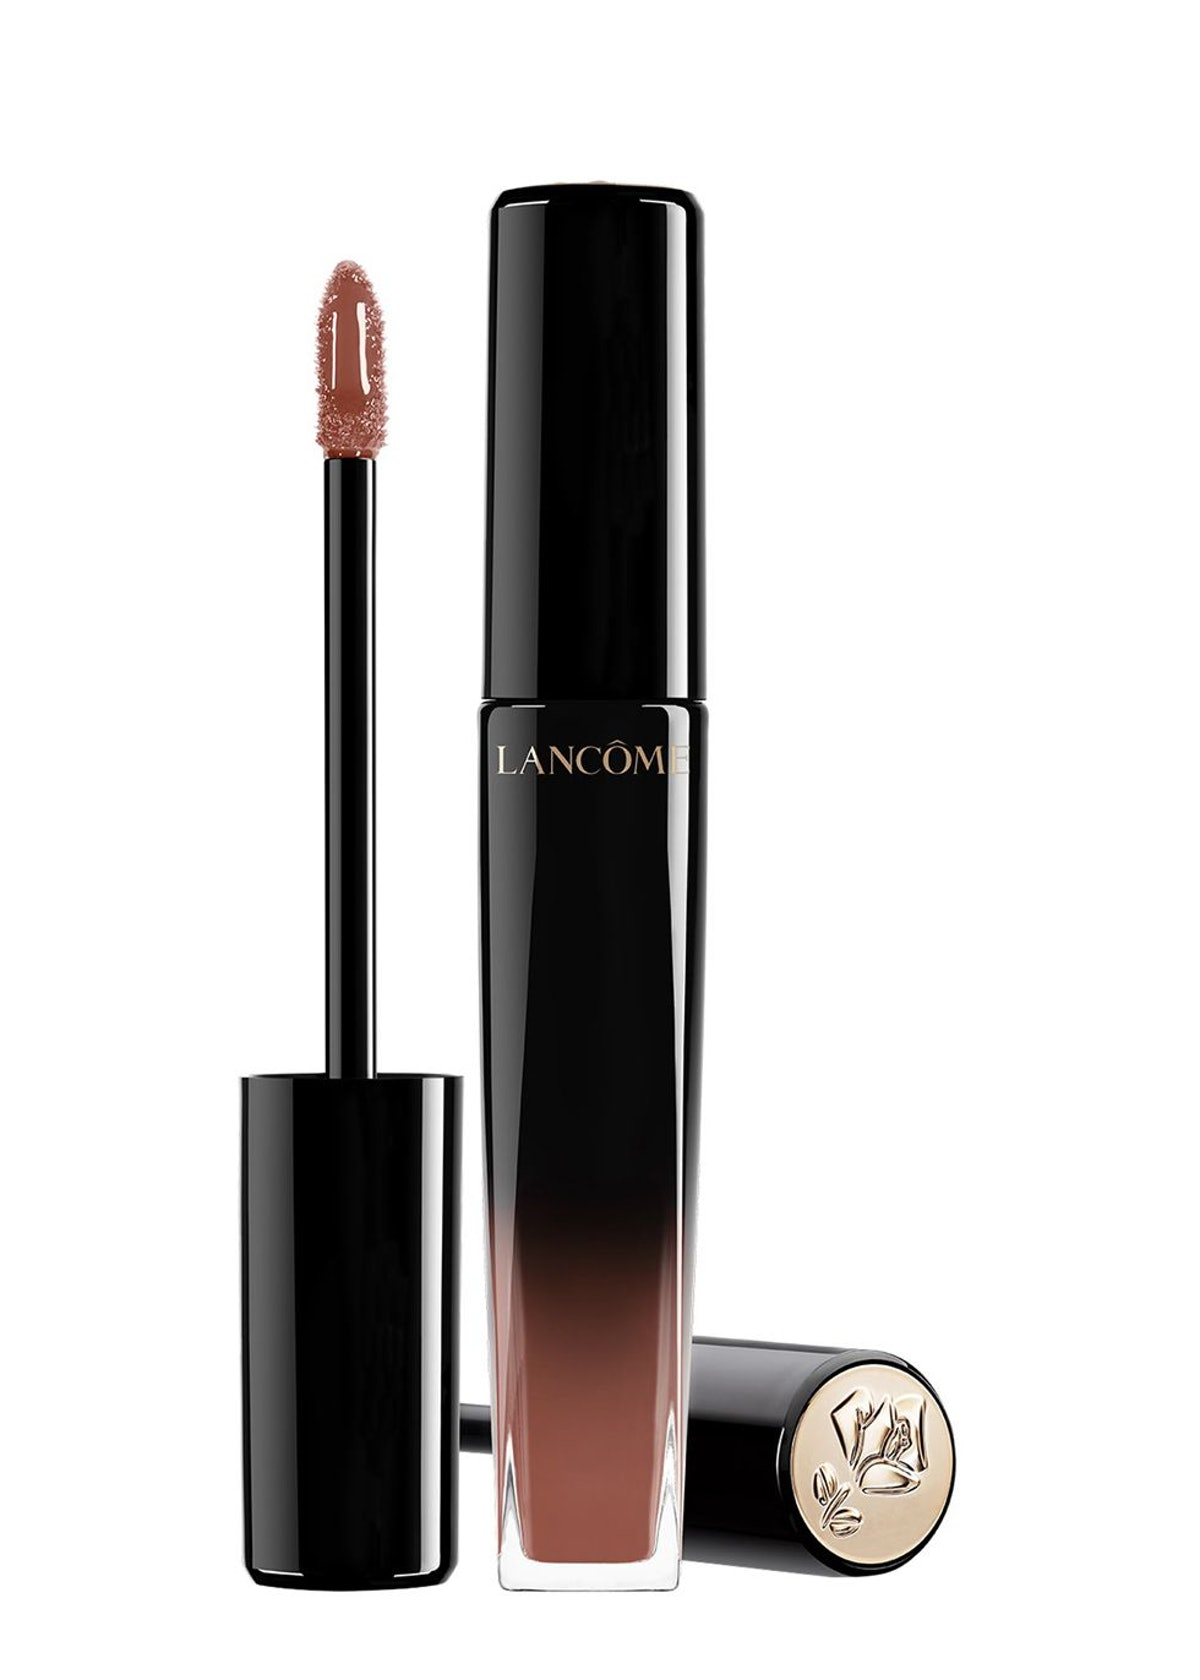 L'Absolu Lacquer Lipstick: additional image